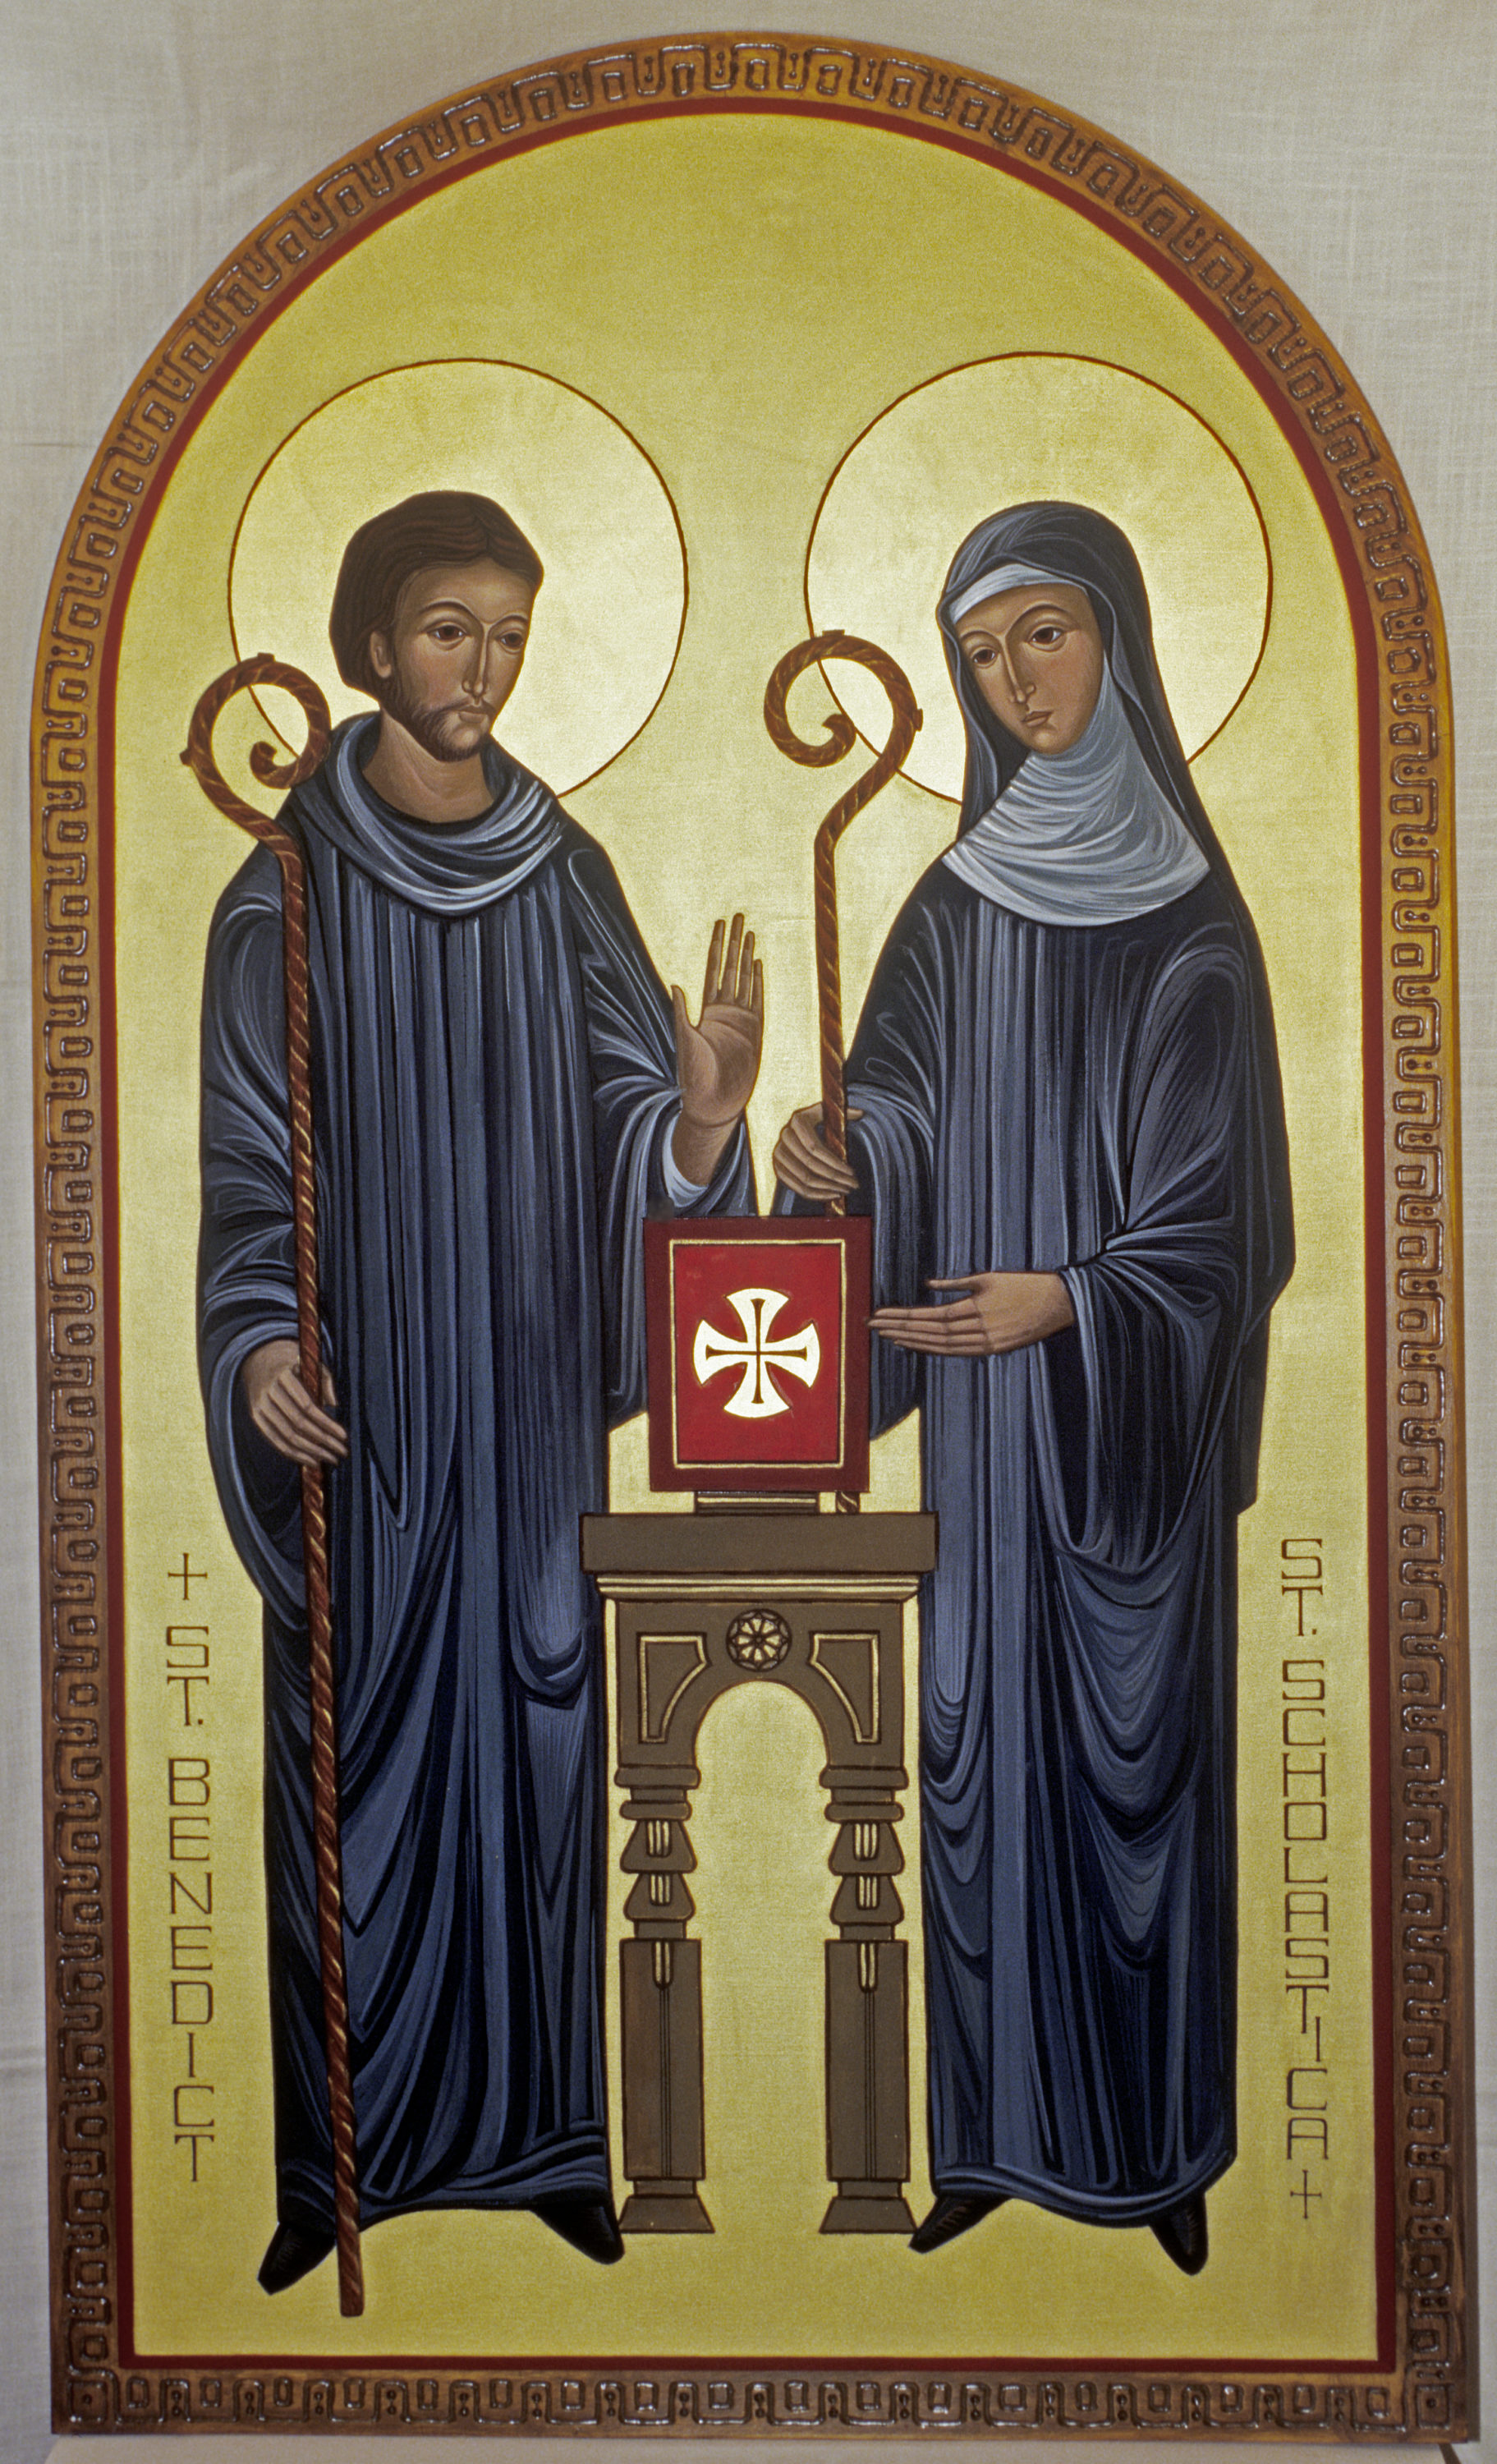 St. Benedict and St. Scholastica by +Sister Mary Charles McGough